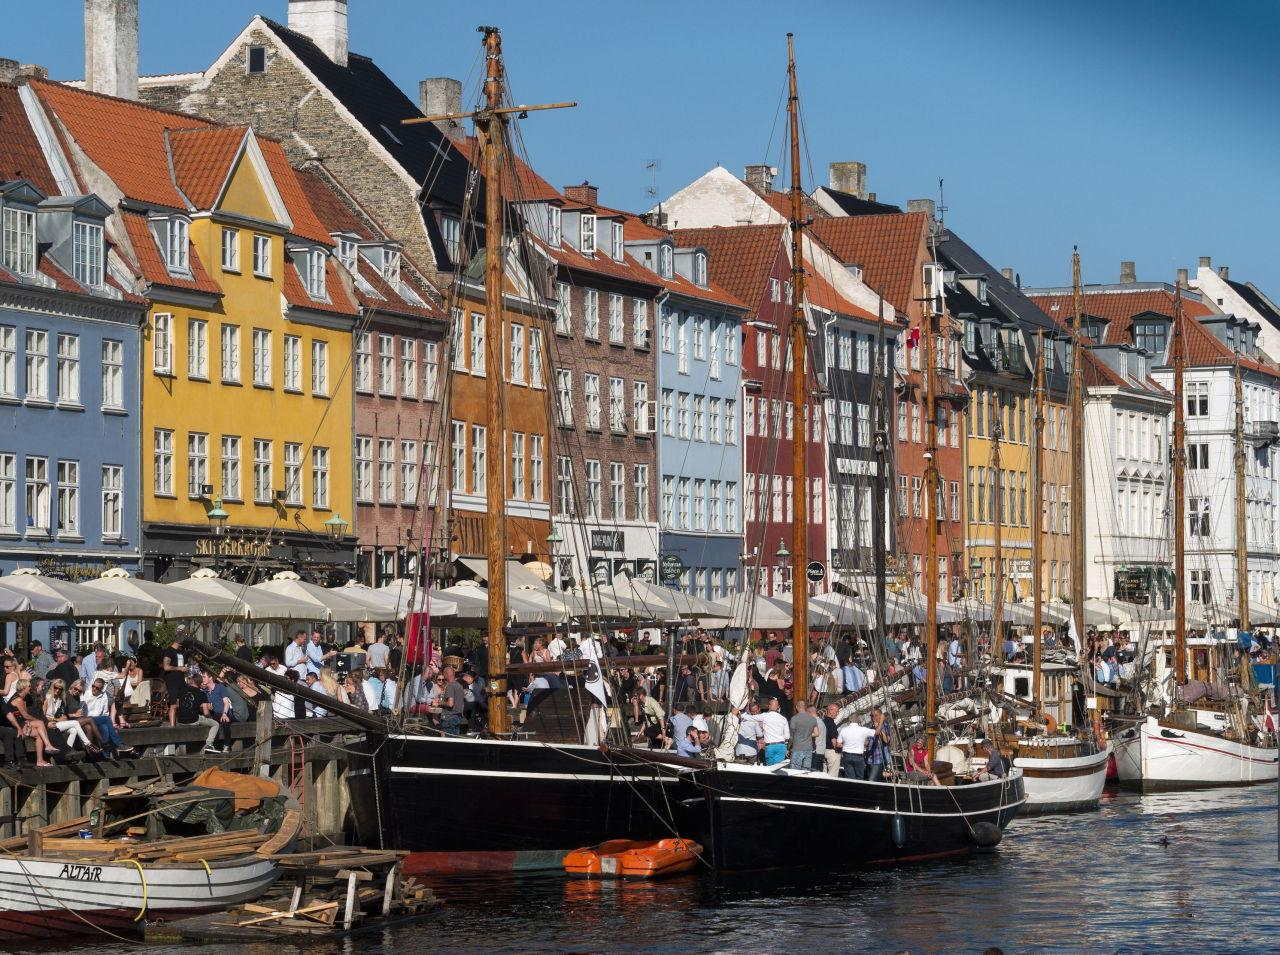 <p>The Danish capital is known for its high levels on gender equality, attractive architecture and culture, propelling it to number nine on the list of the world's best cities to live in. (Rex)</p>